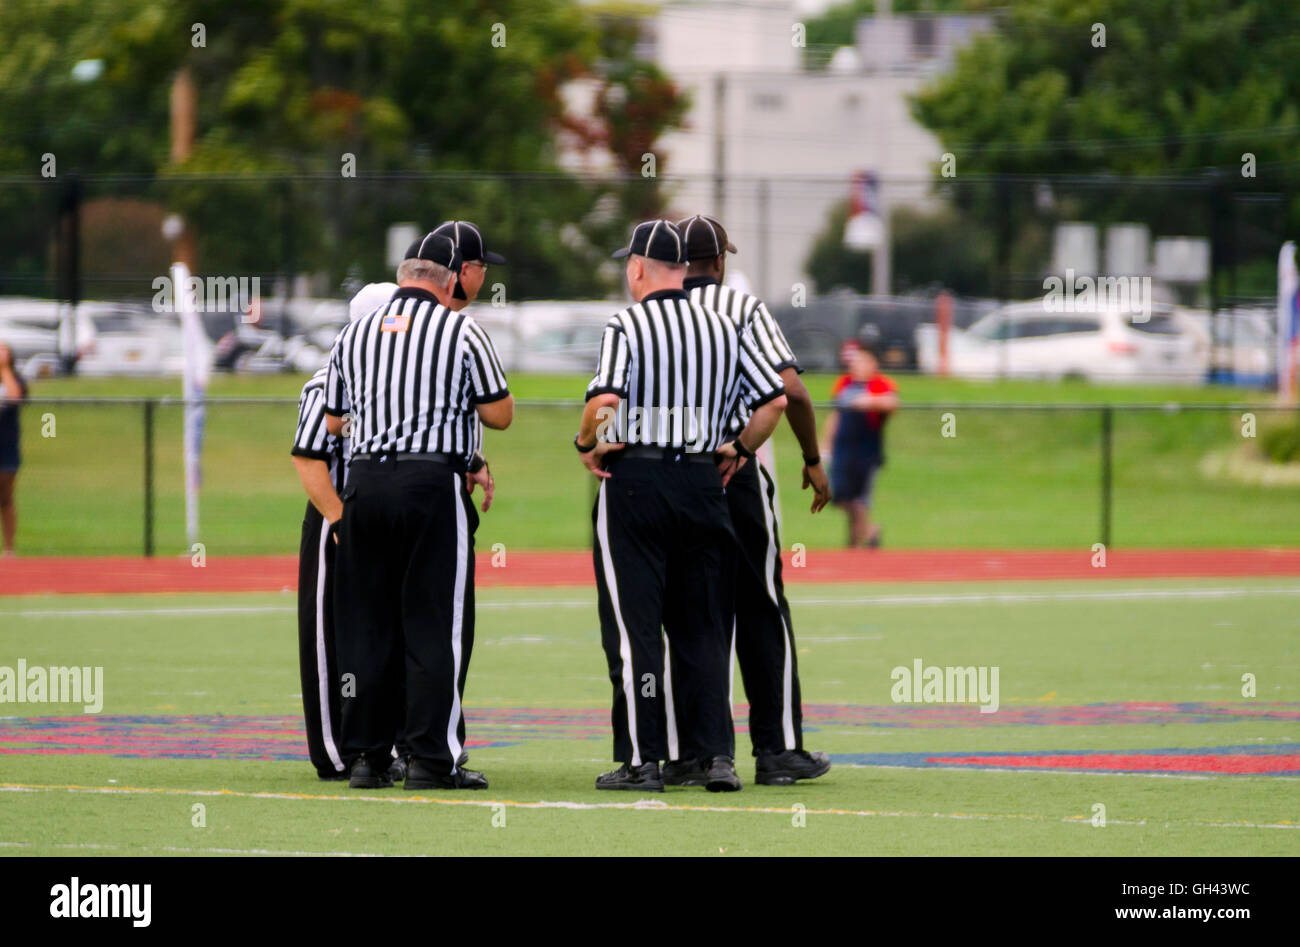 Referees discussing a play during high school football game - Stock Image